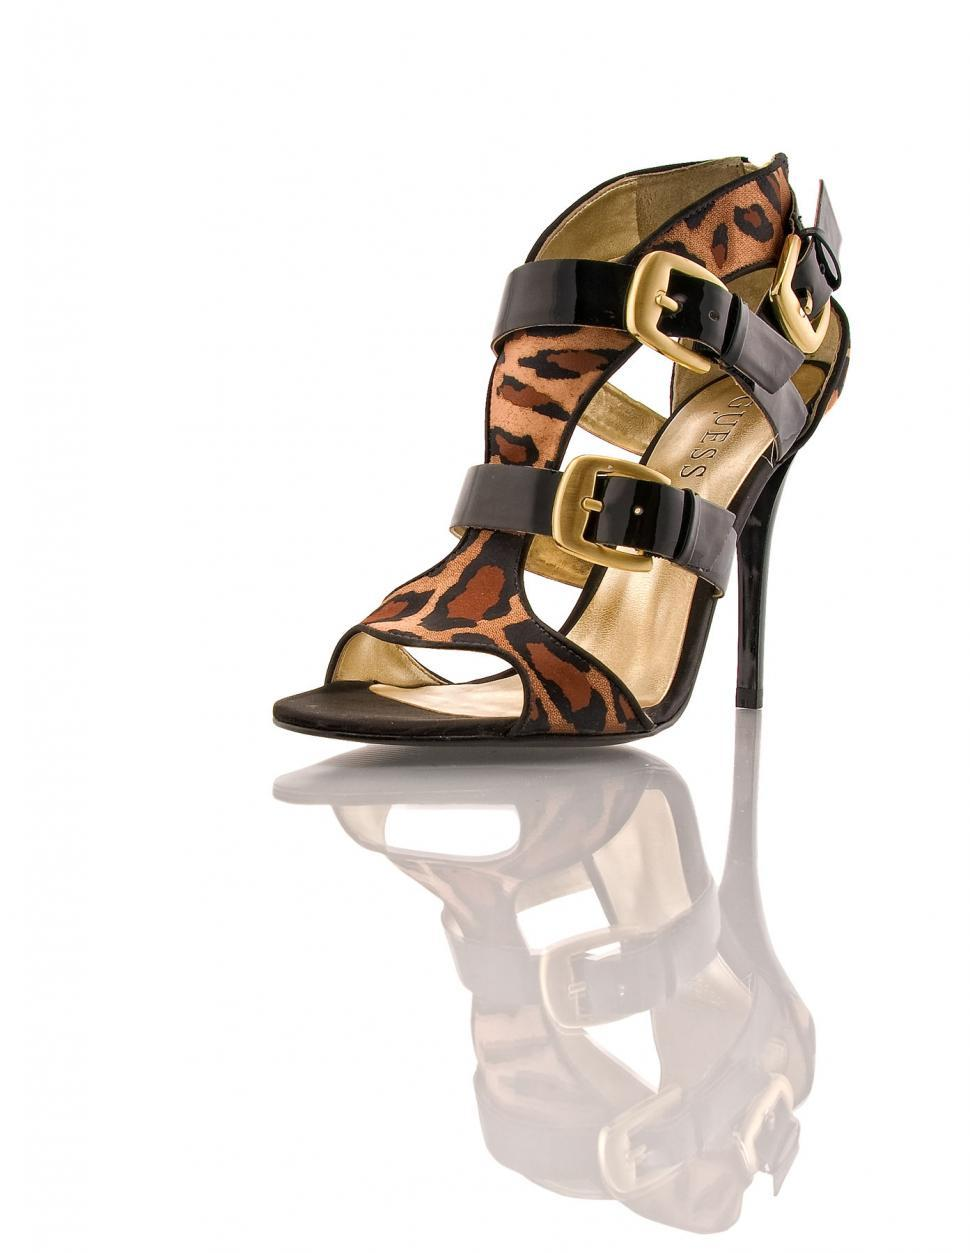 Download Free Stock HD Photo of High Heeled Shoe Online